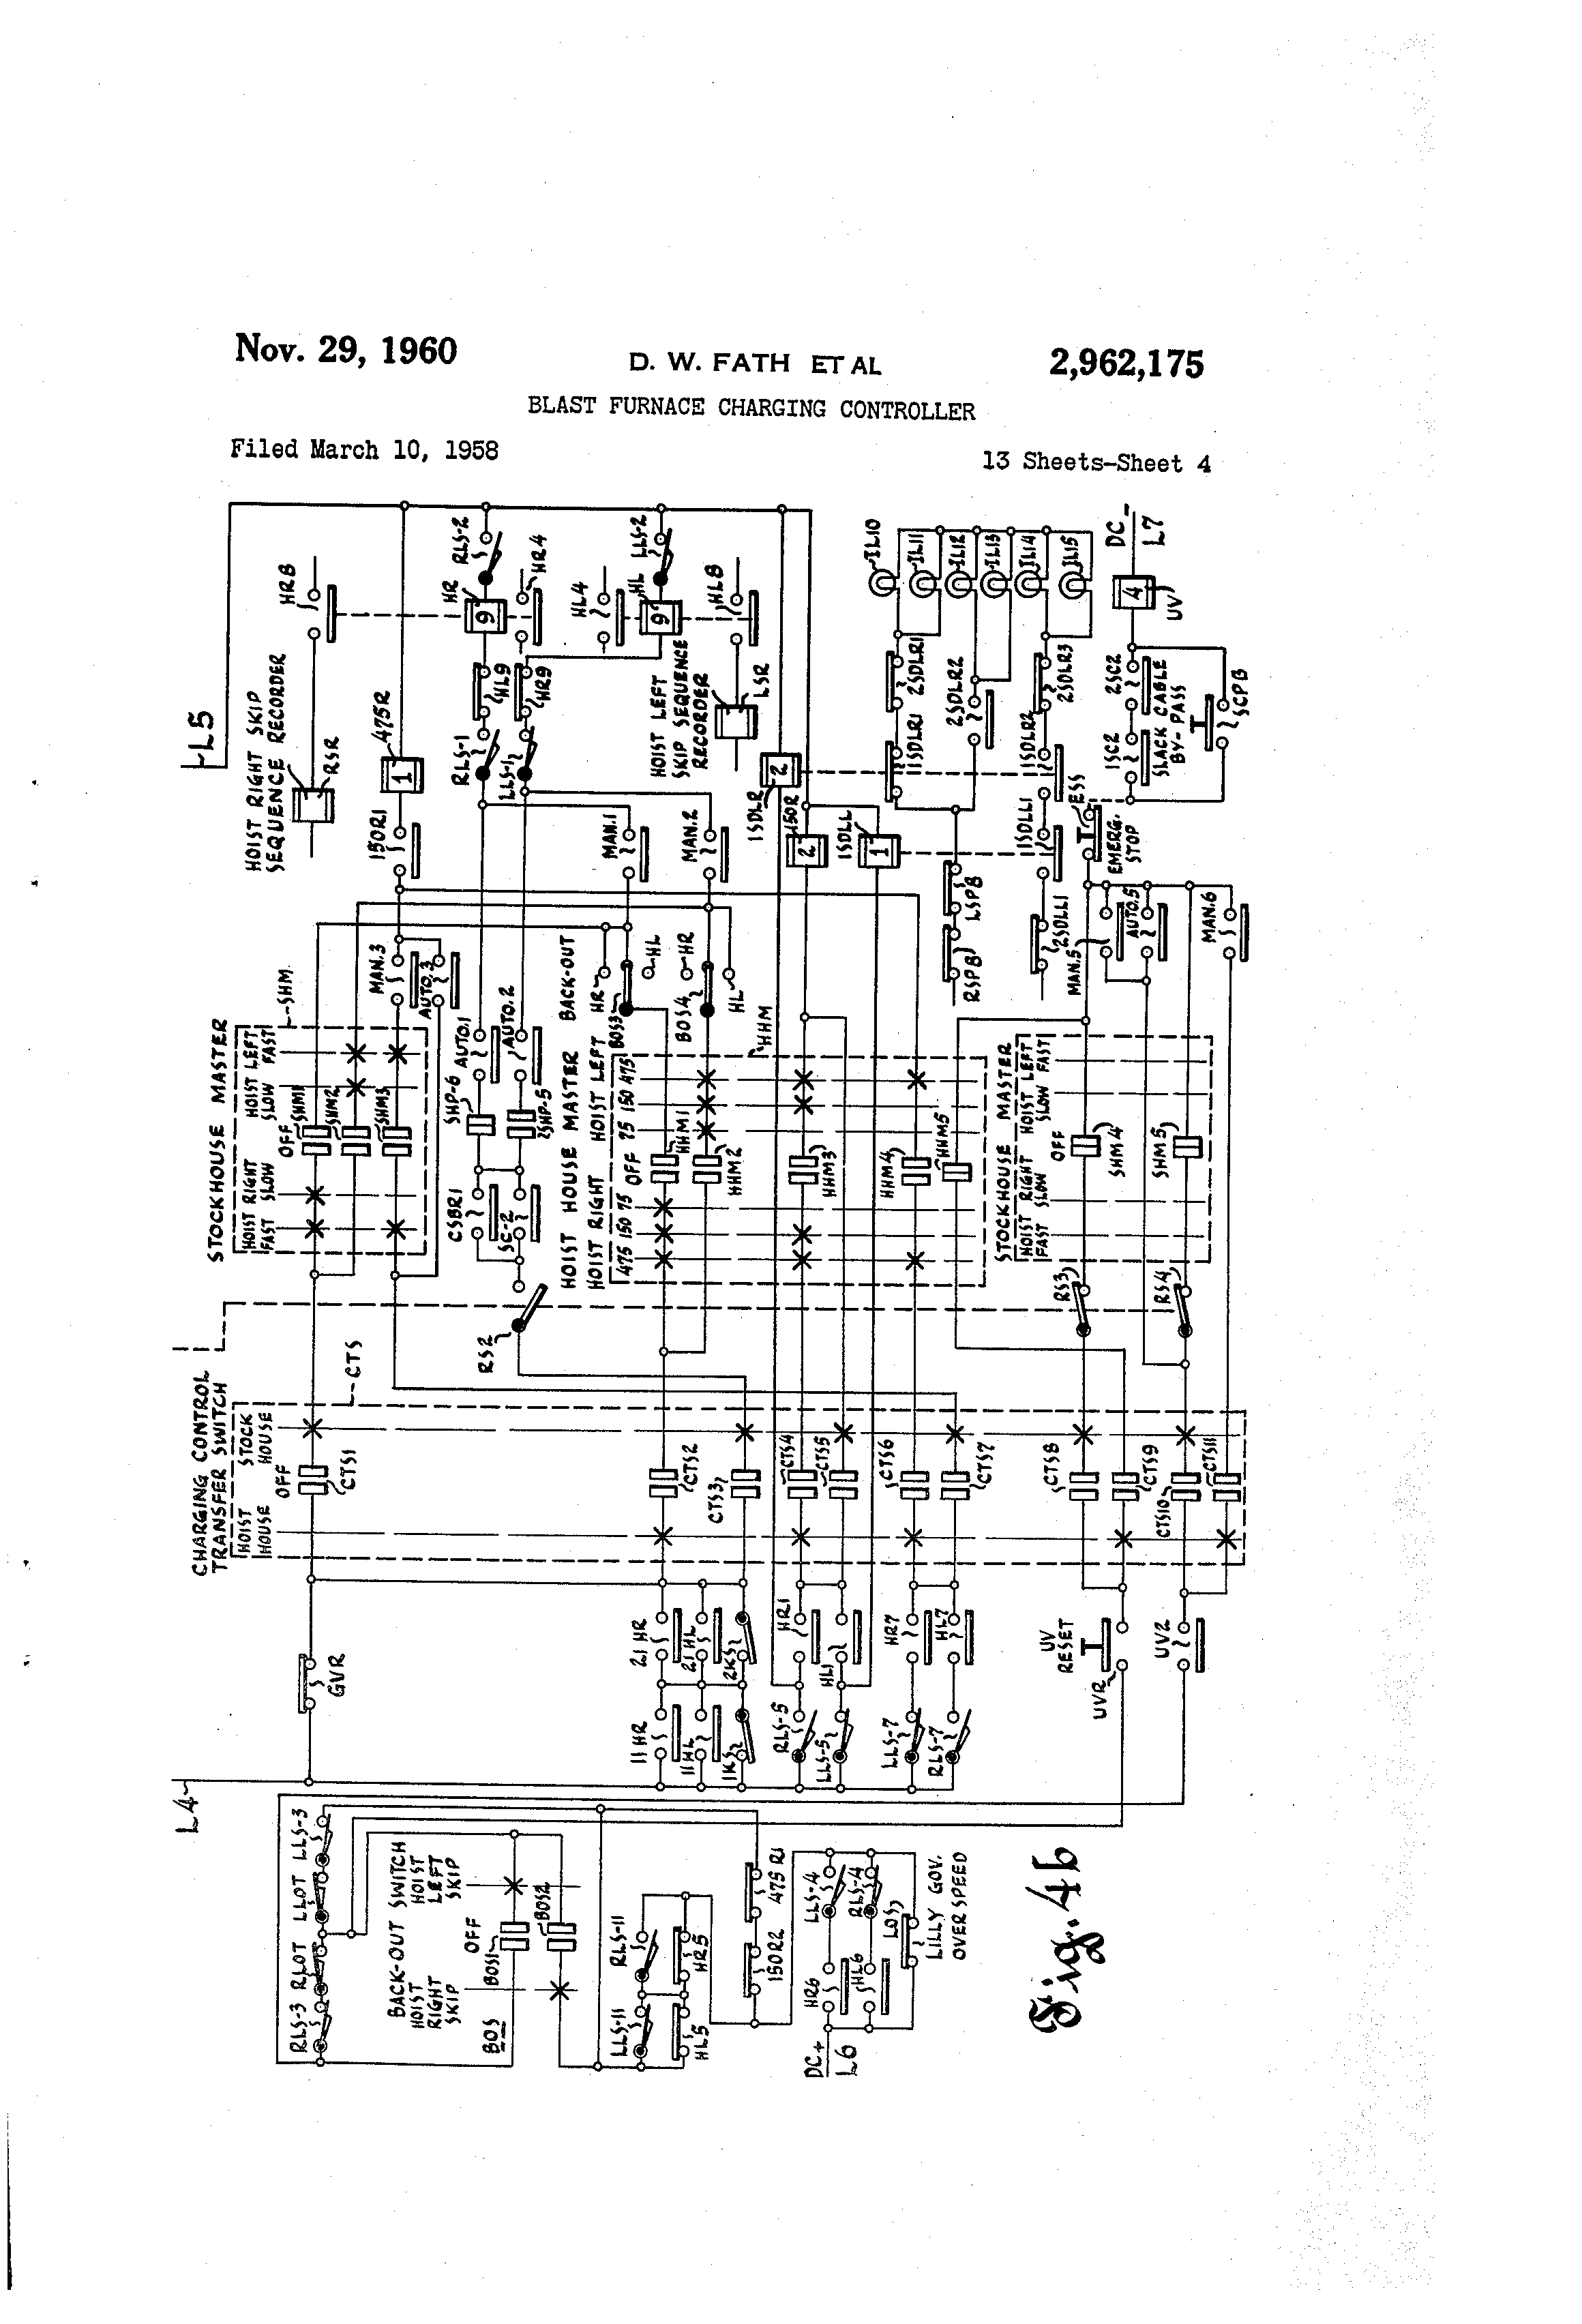 1966 Grand Prix Wiring Diagram Free Download Trusted Diagrams 1967 Pontiac Picture Patent Us2962175 Blast Furnace Charging Controller Google Patents G6